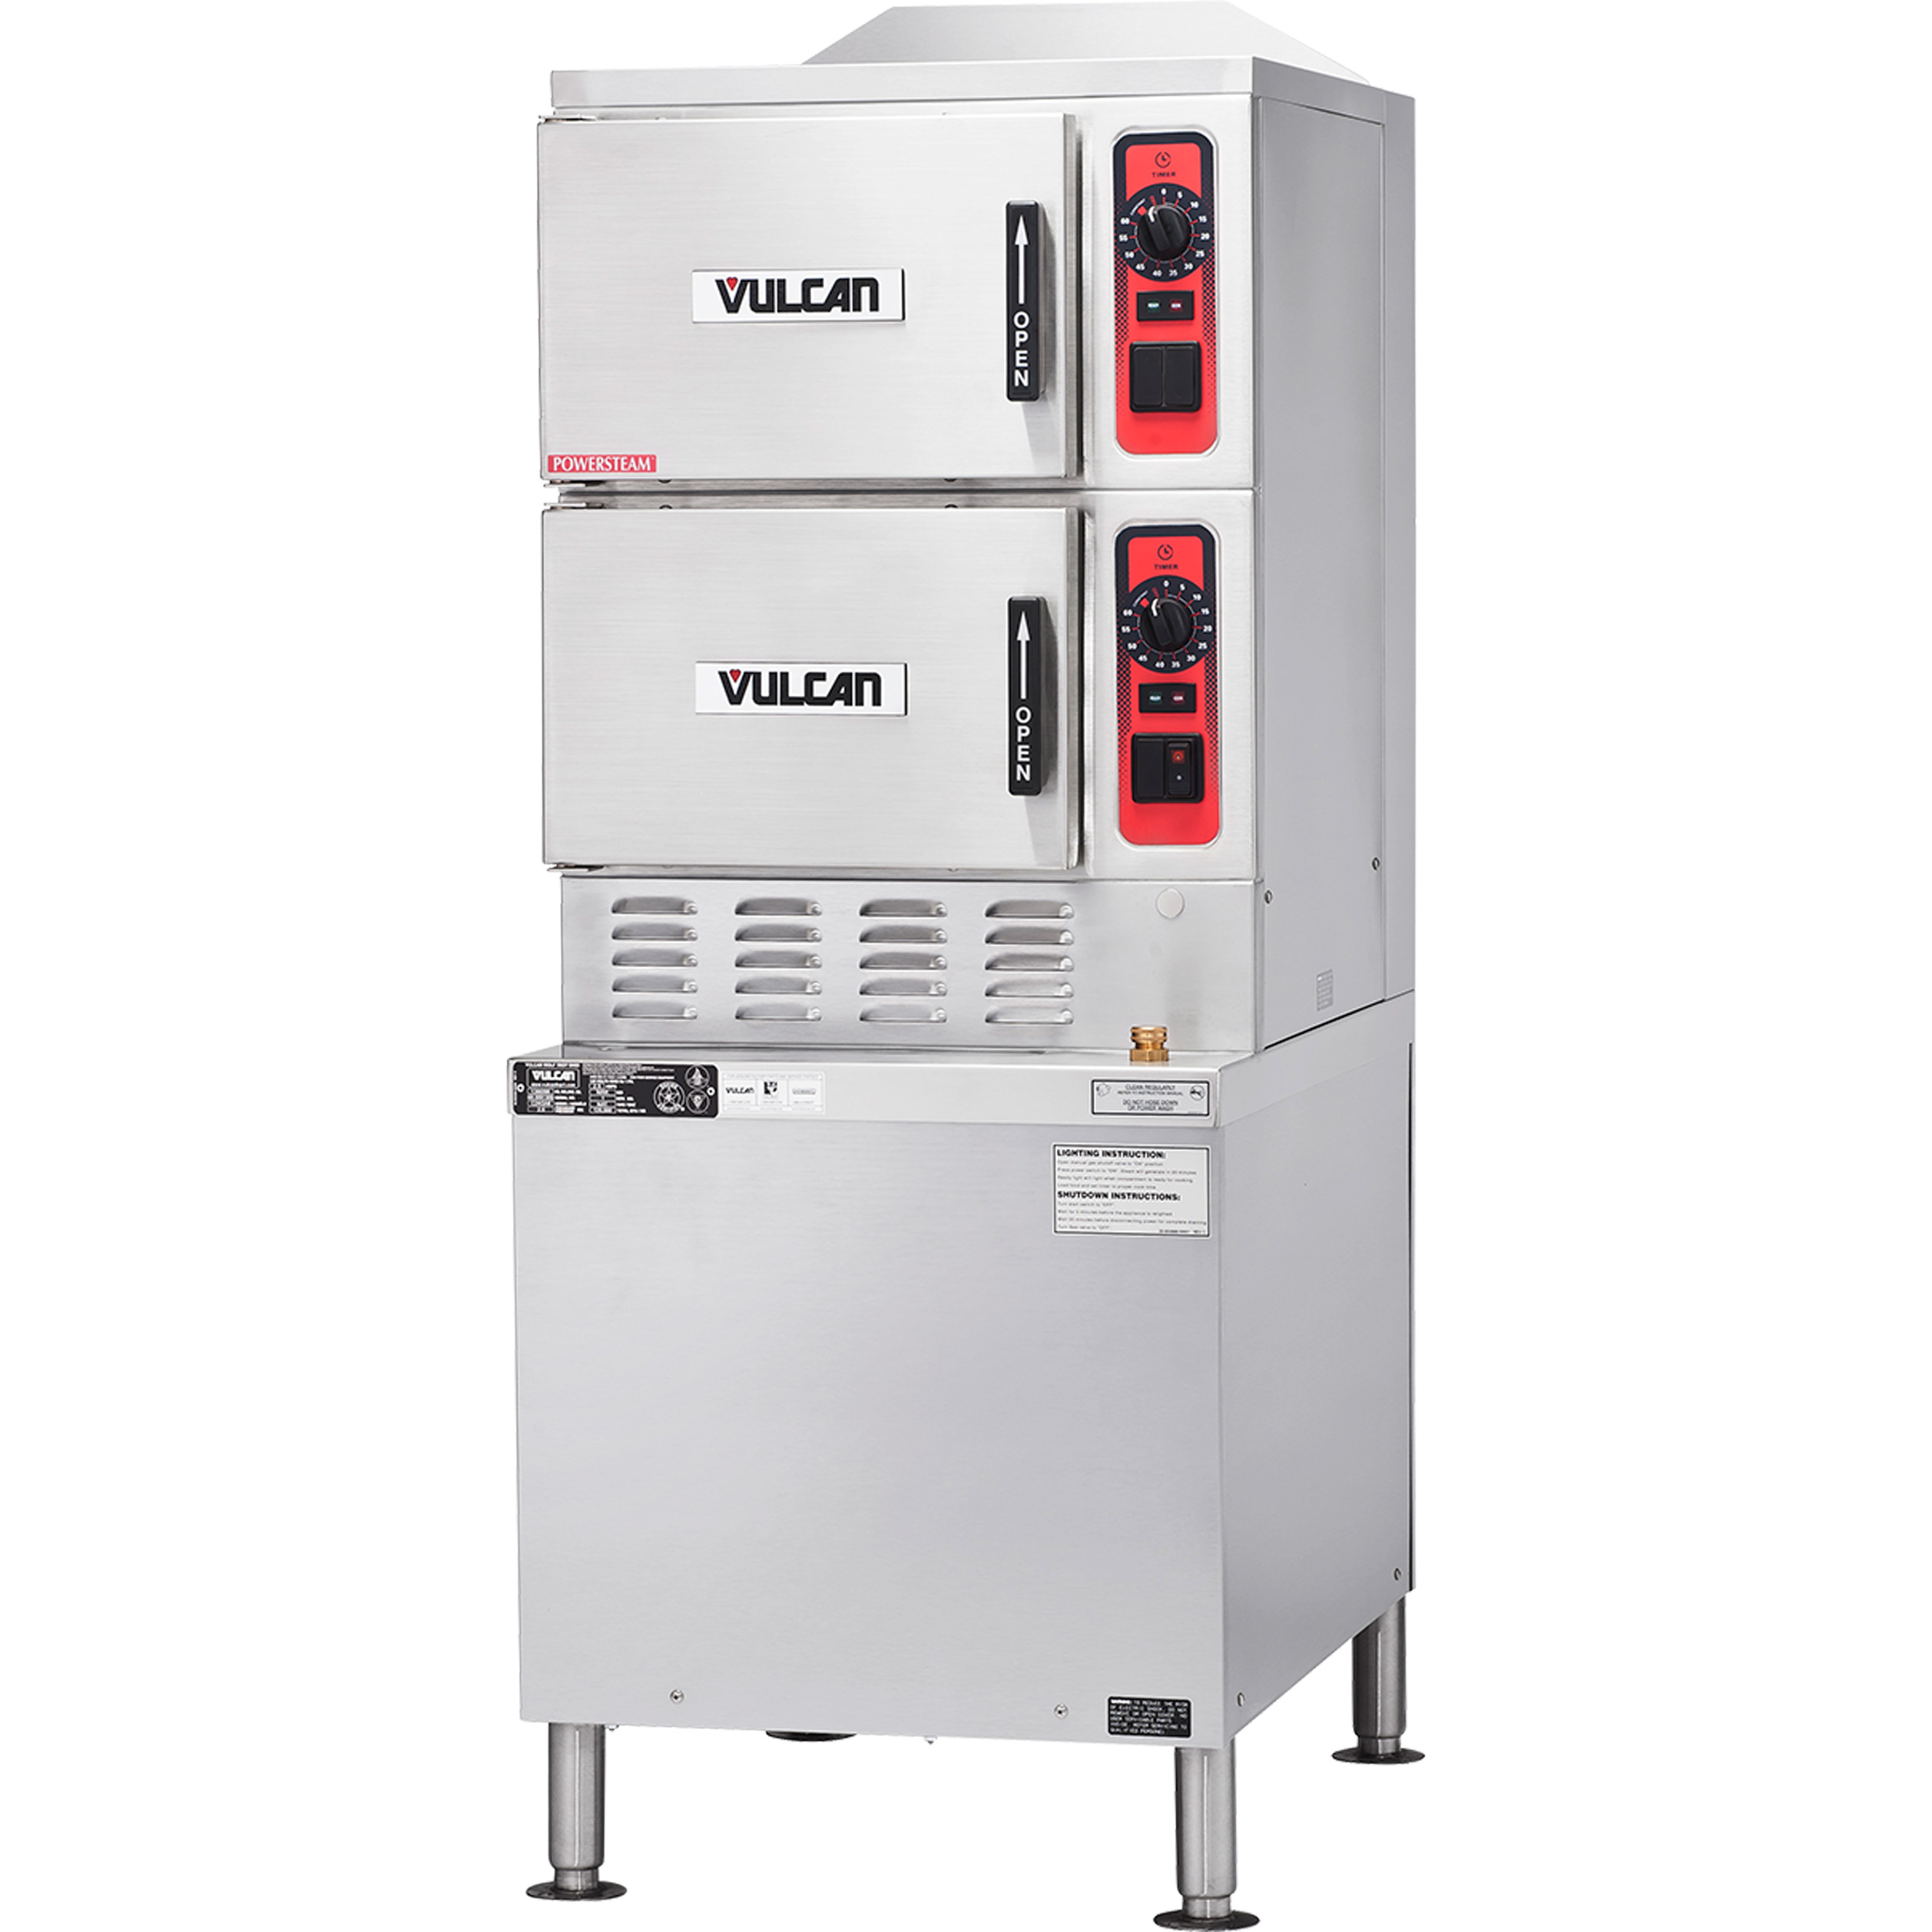 Vulcan C24GA6 PS steamer, convection, gas, floor model